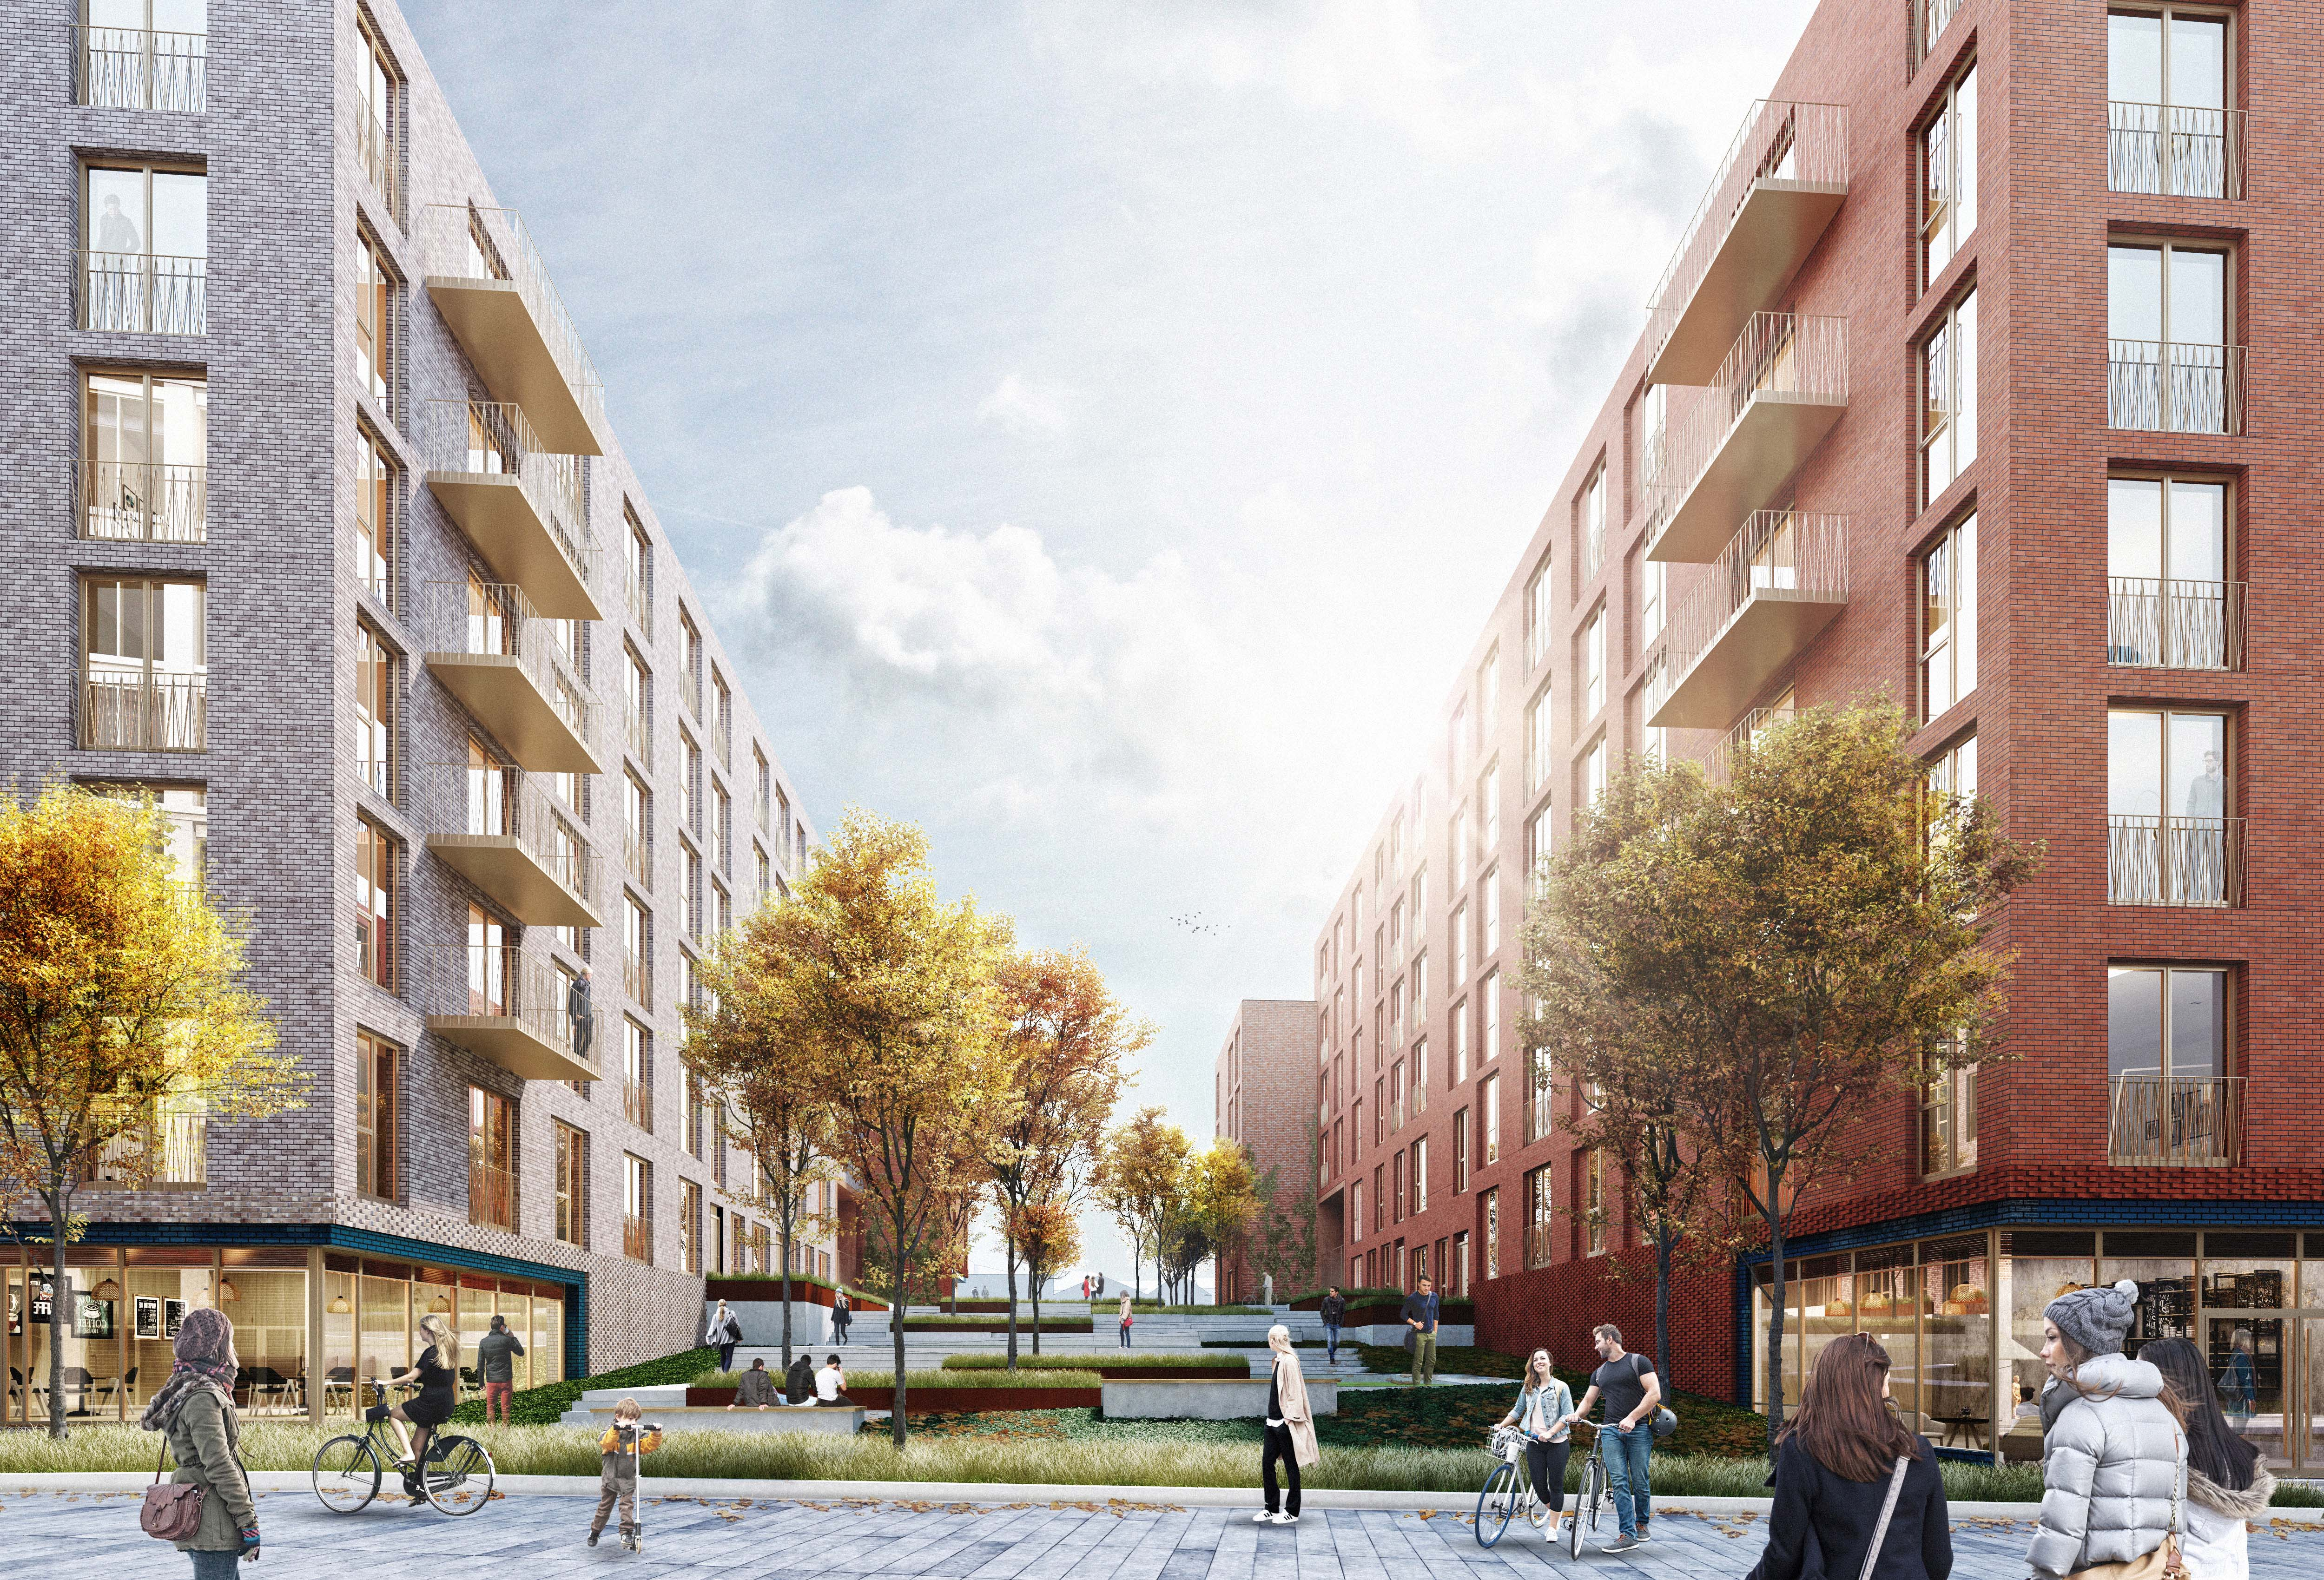 234 Home New Fountainbridge Secures Planning Approval Scottish Housing News